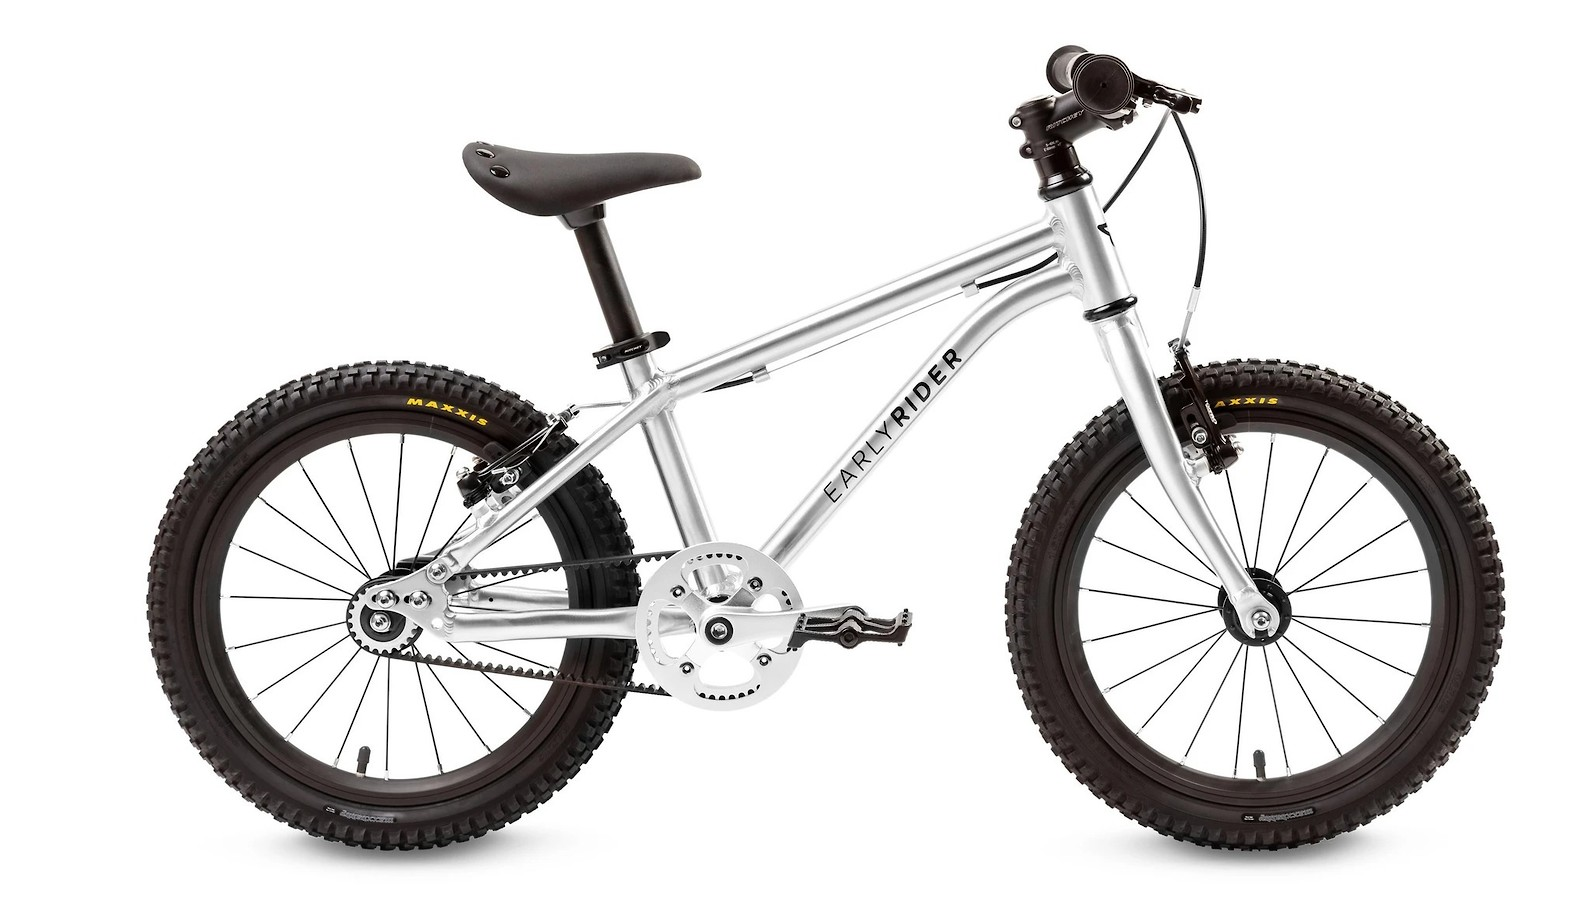 2020 Early Rider Belter 16 Trail